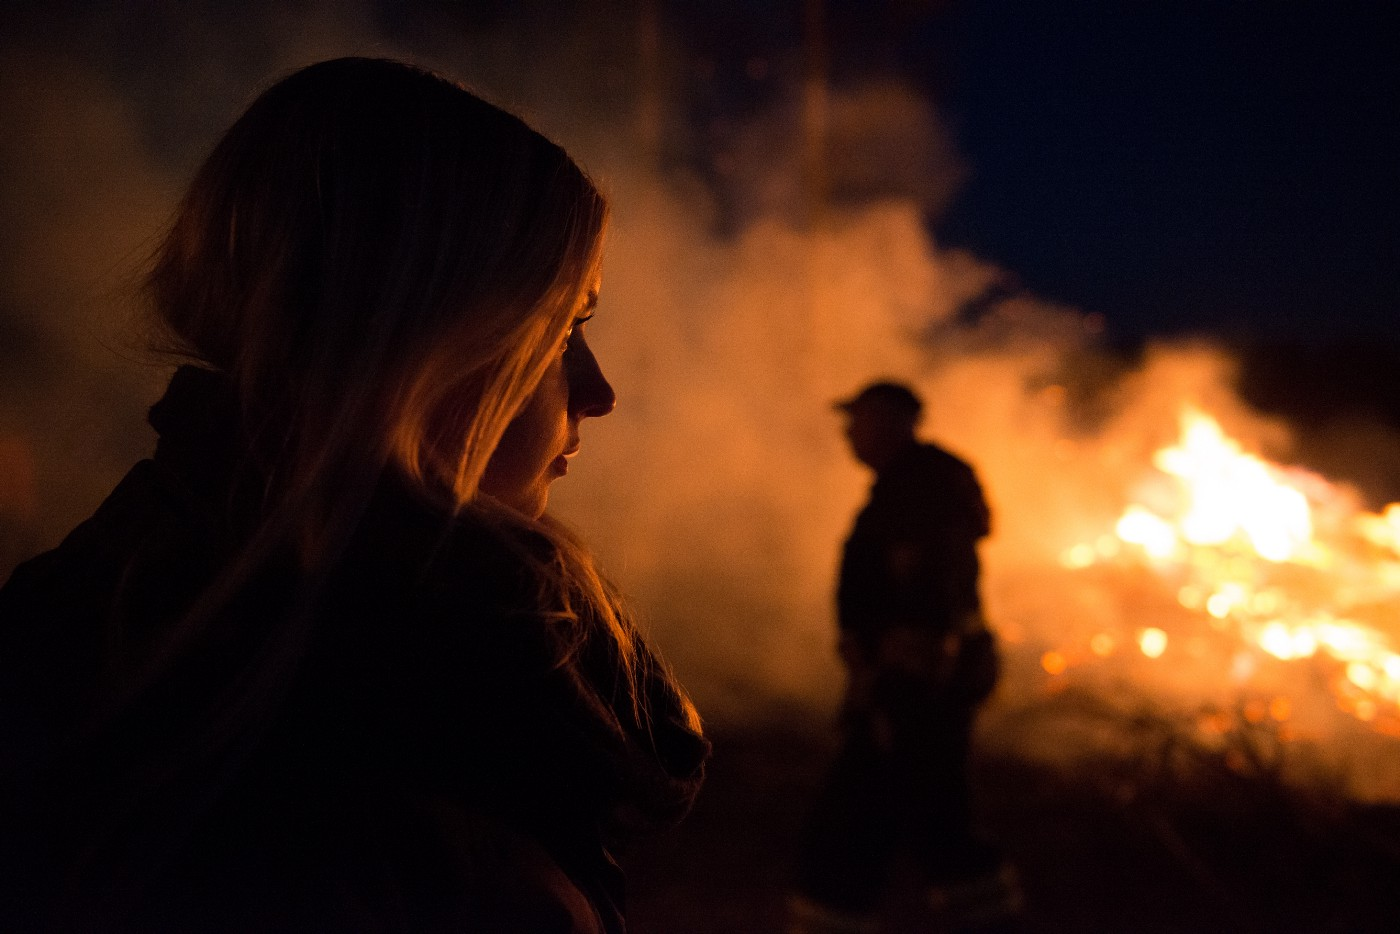 Side view of a young woman's face with fire raging in the back ground